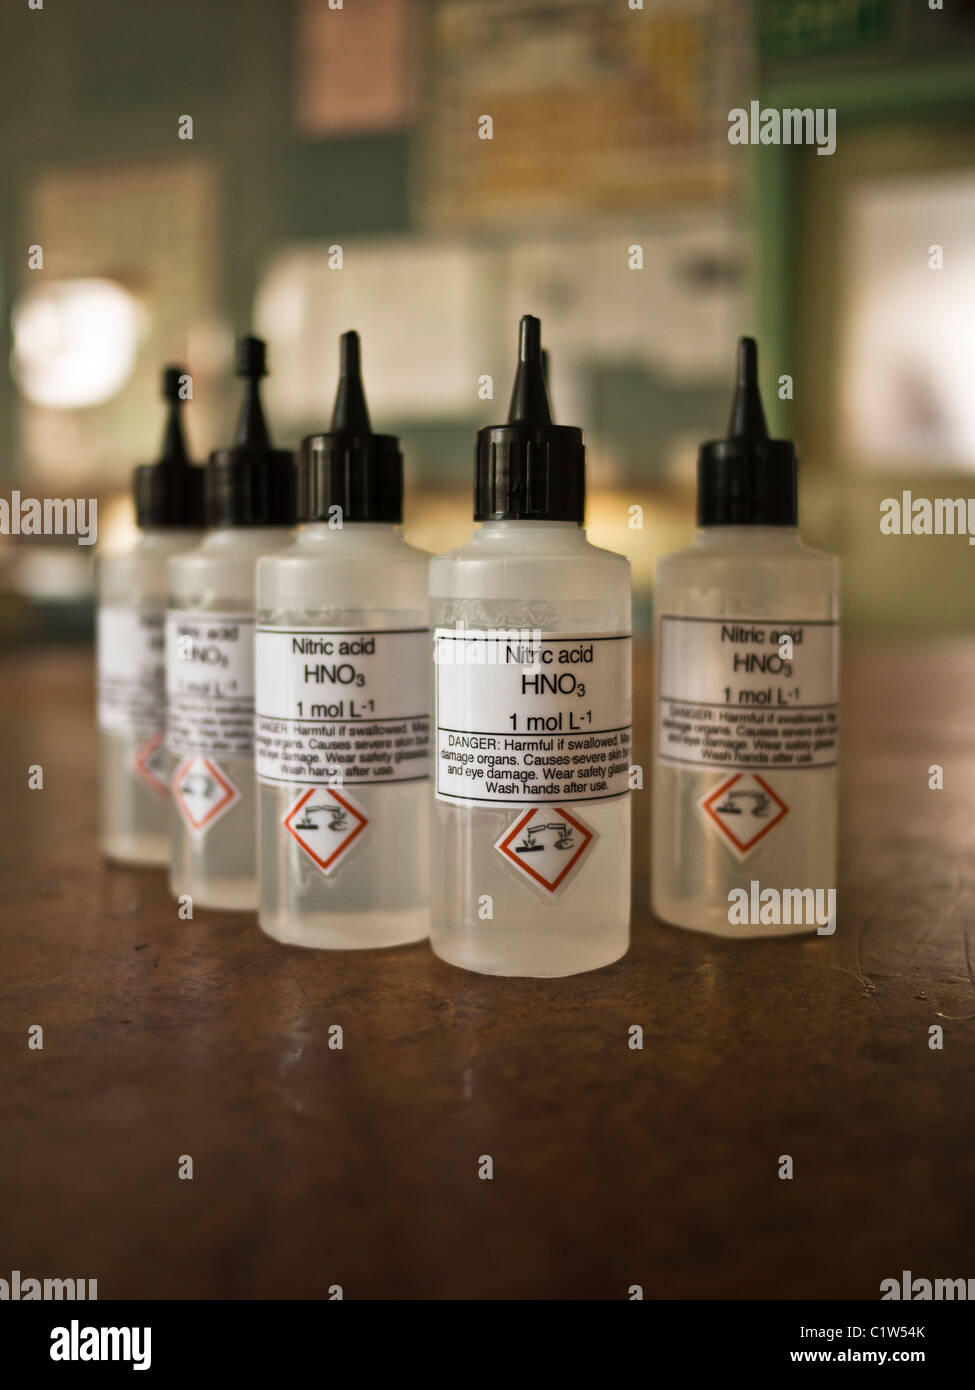 Nitric acid dropper bottles used in school science laboratory - Stock Image